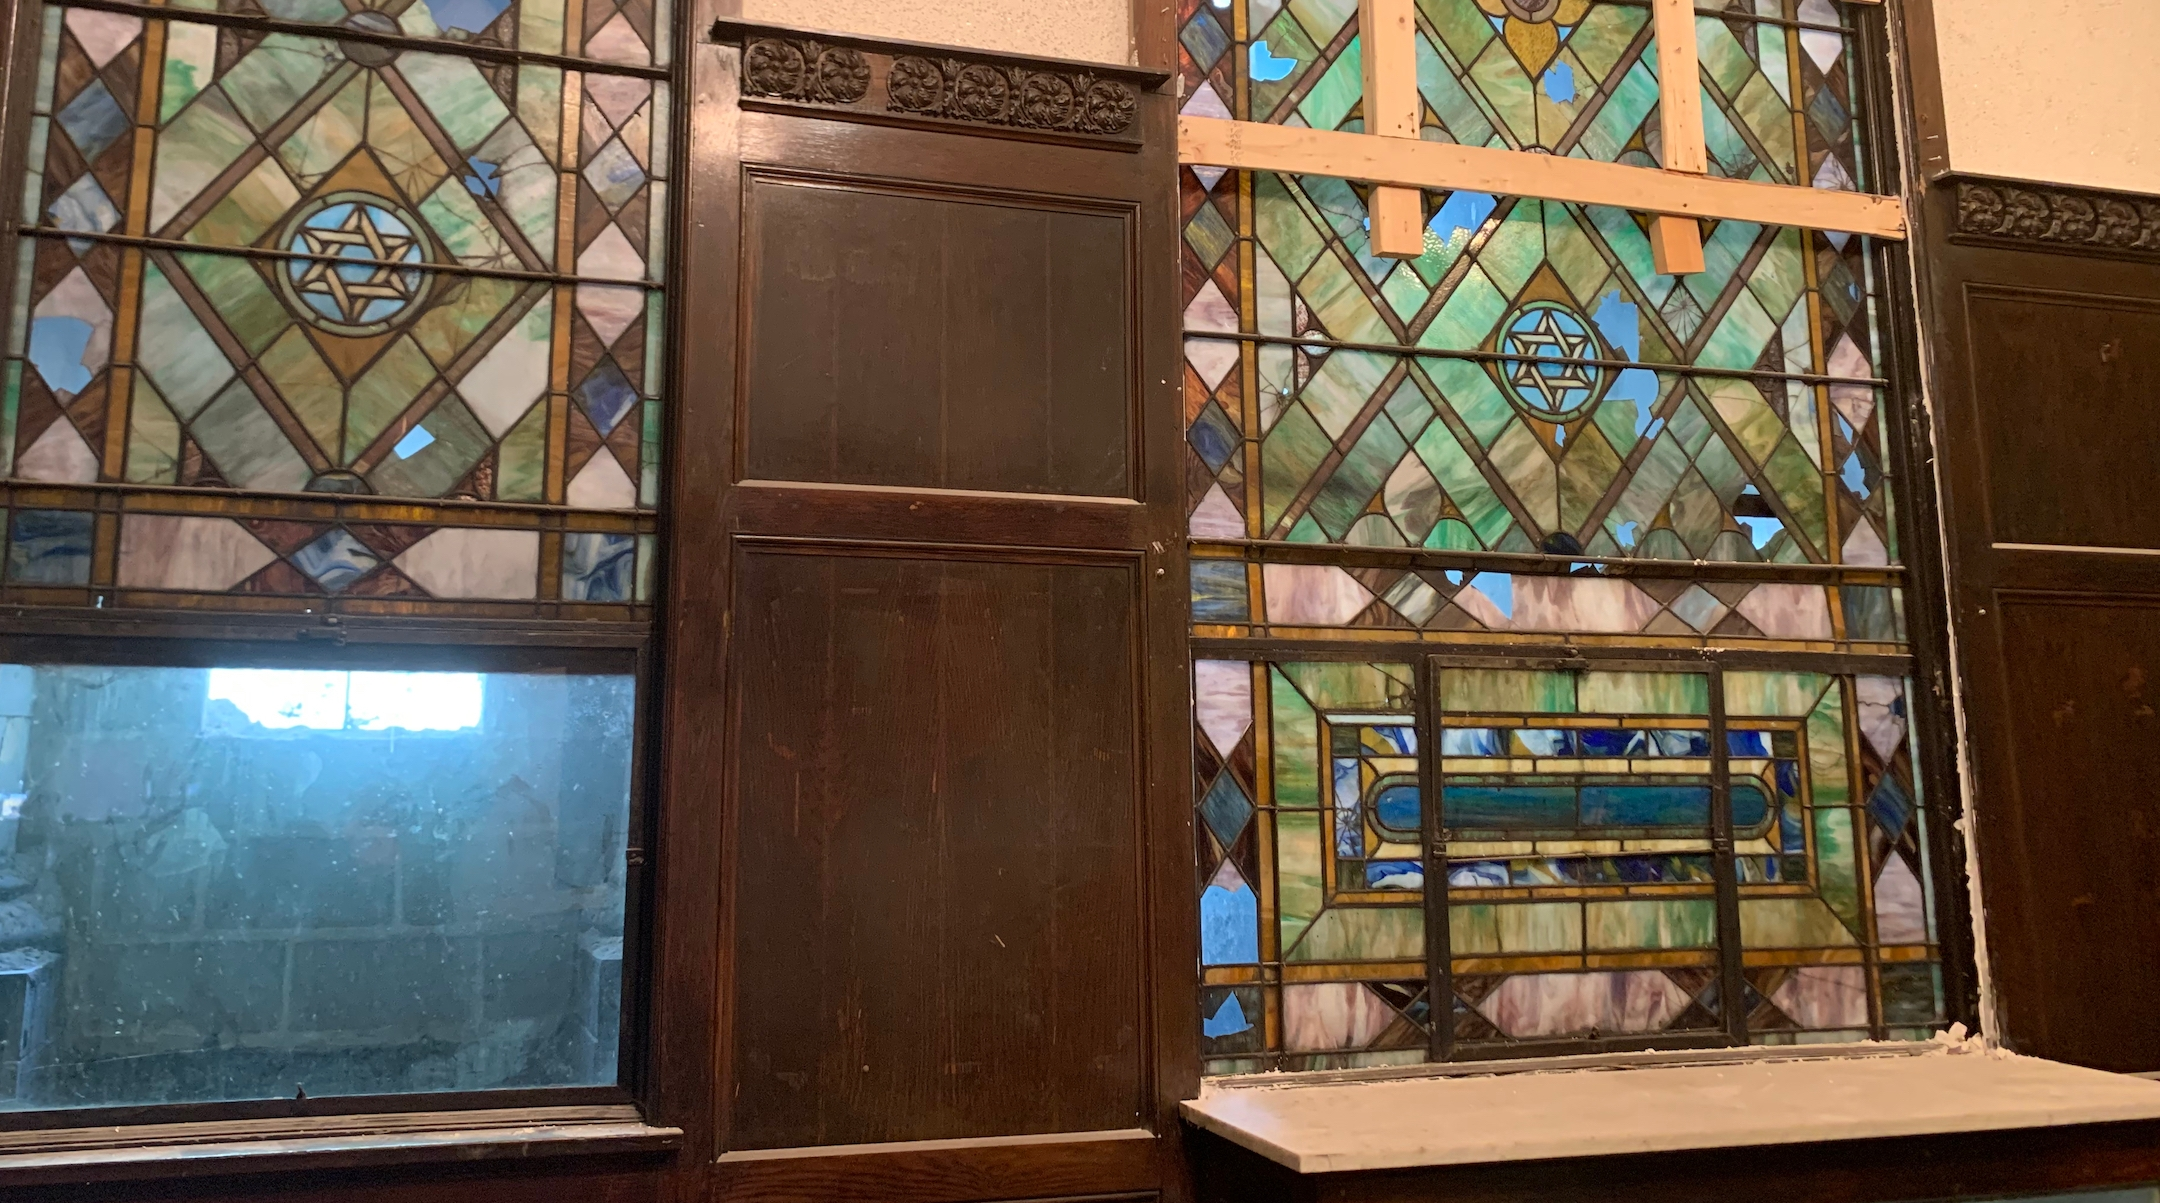 Stained-glass windows in a former synagogue on Chicago's South Side